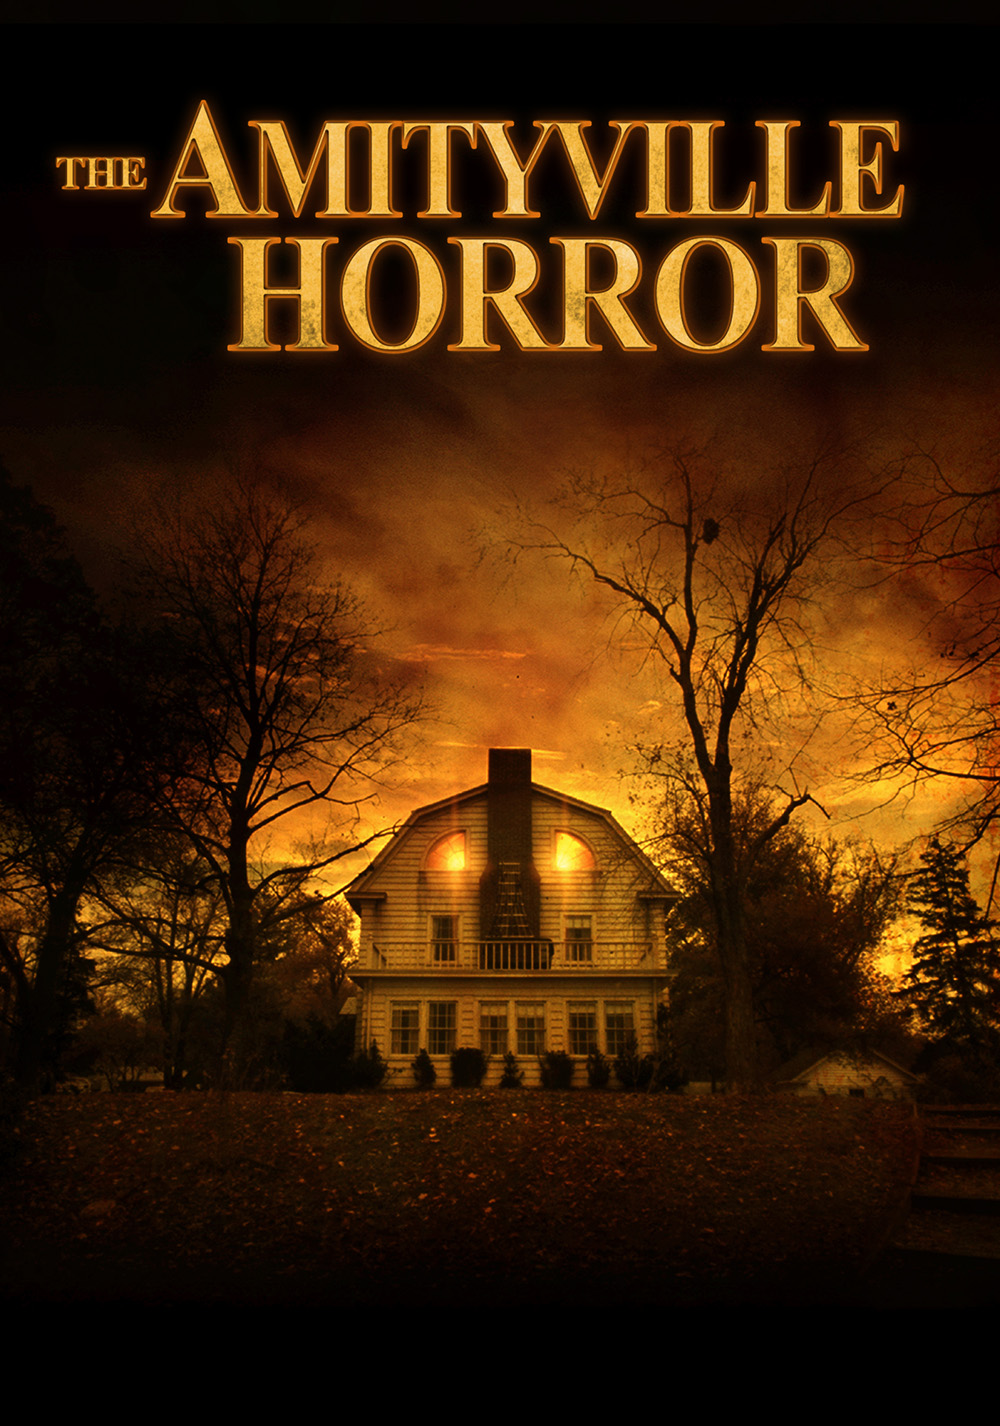 Top 10 Hollywood horror movies you should not miss